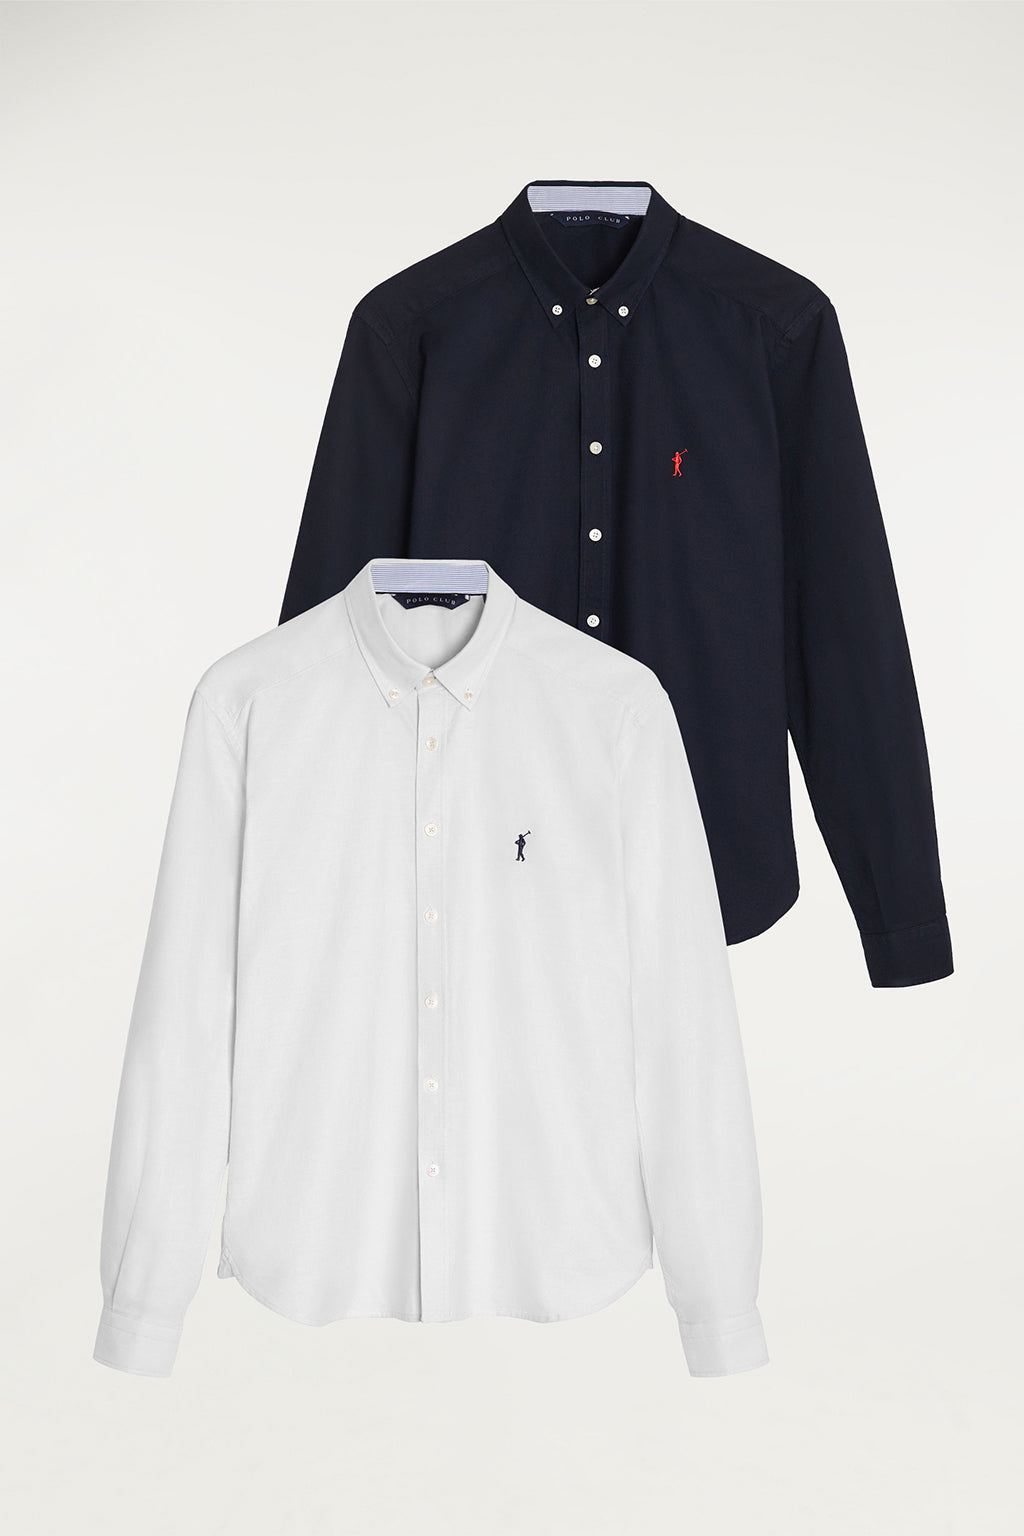 Oxford shirt two pack (white and navy blue)